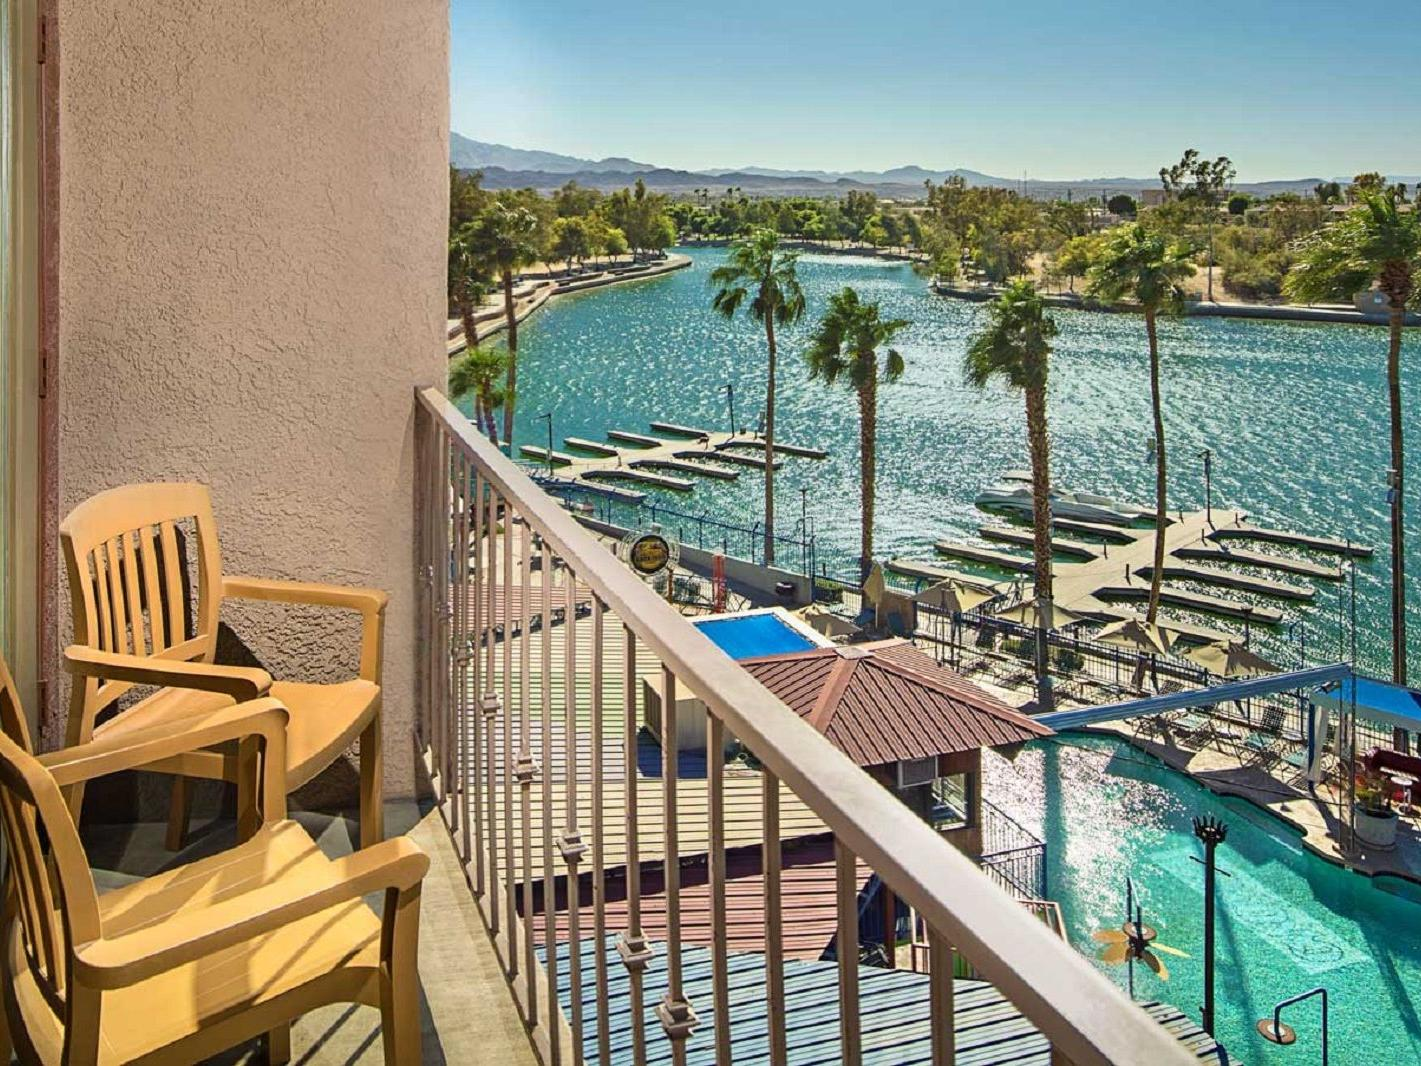 Balcony view of Lake Havasu.